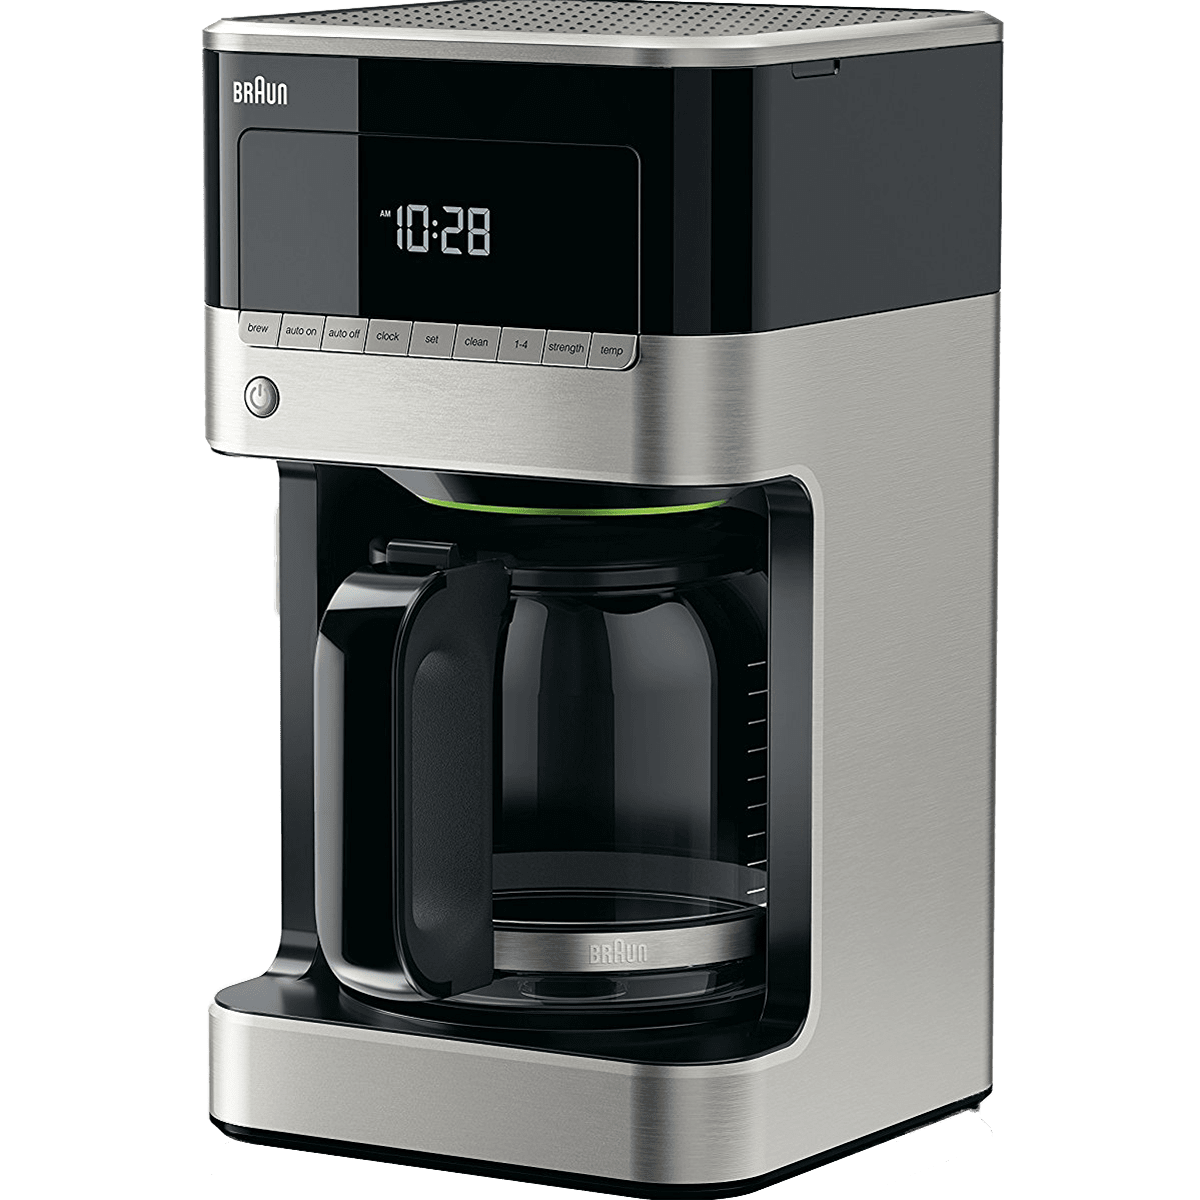 Braun Coffee Maker Price